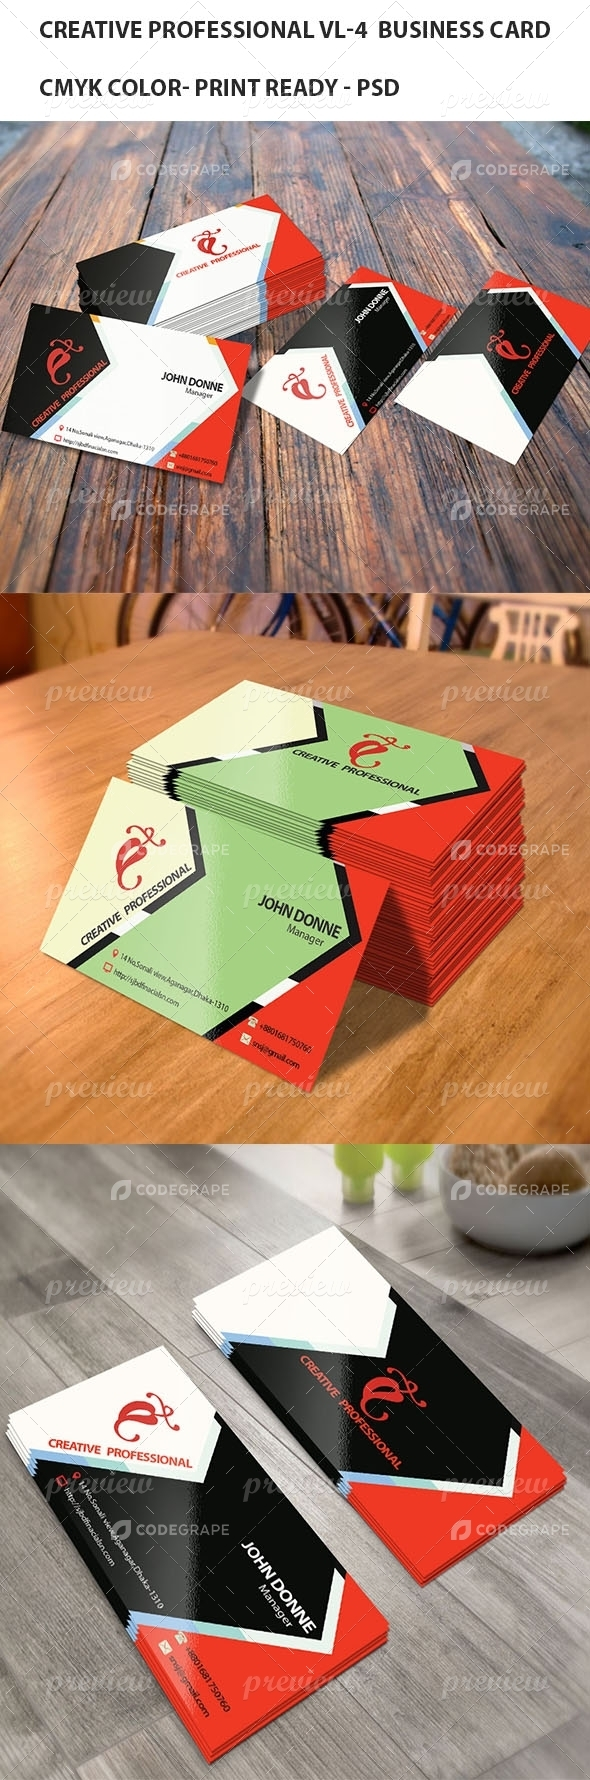 Creative Professional VL- 4 Business card